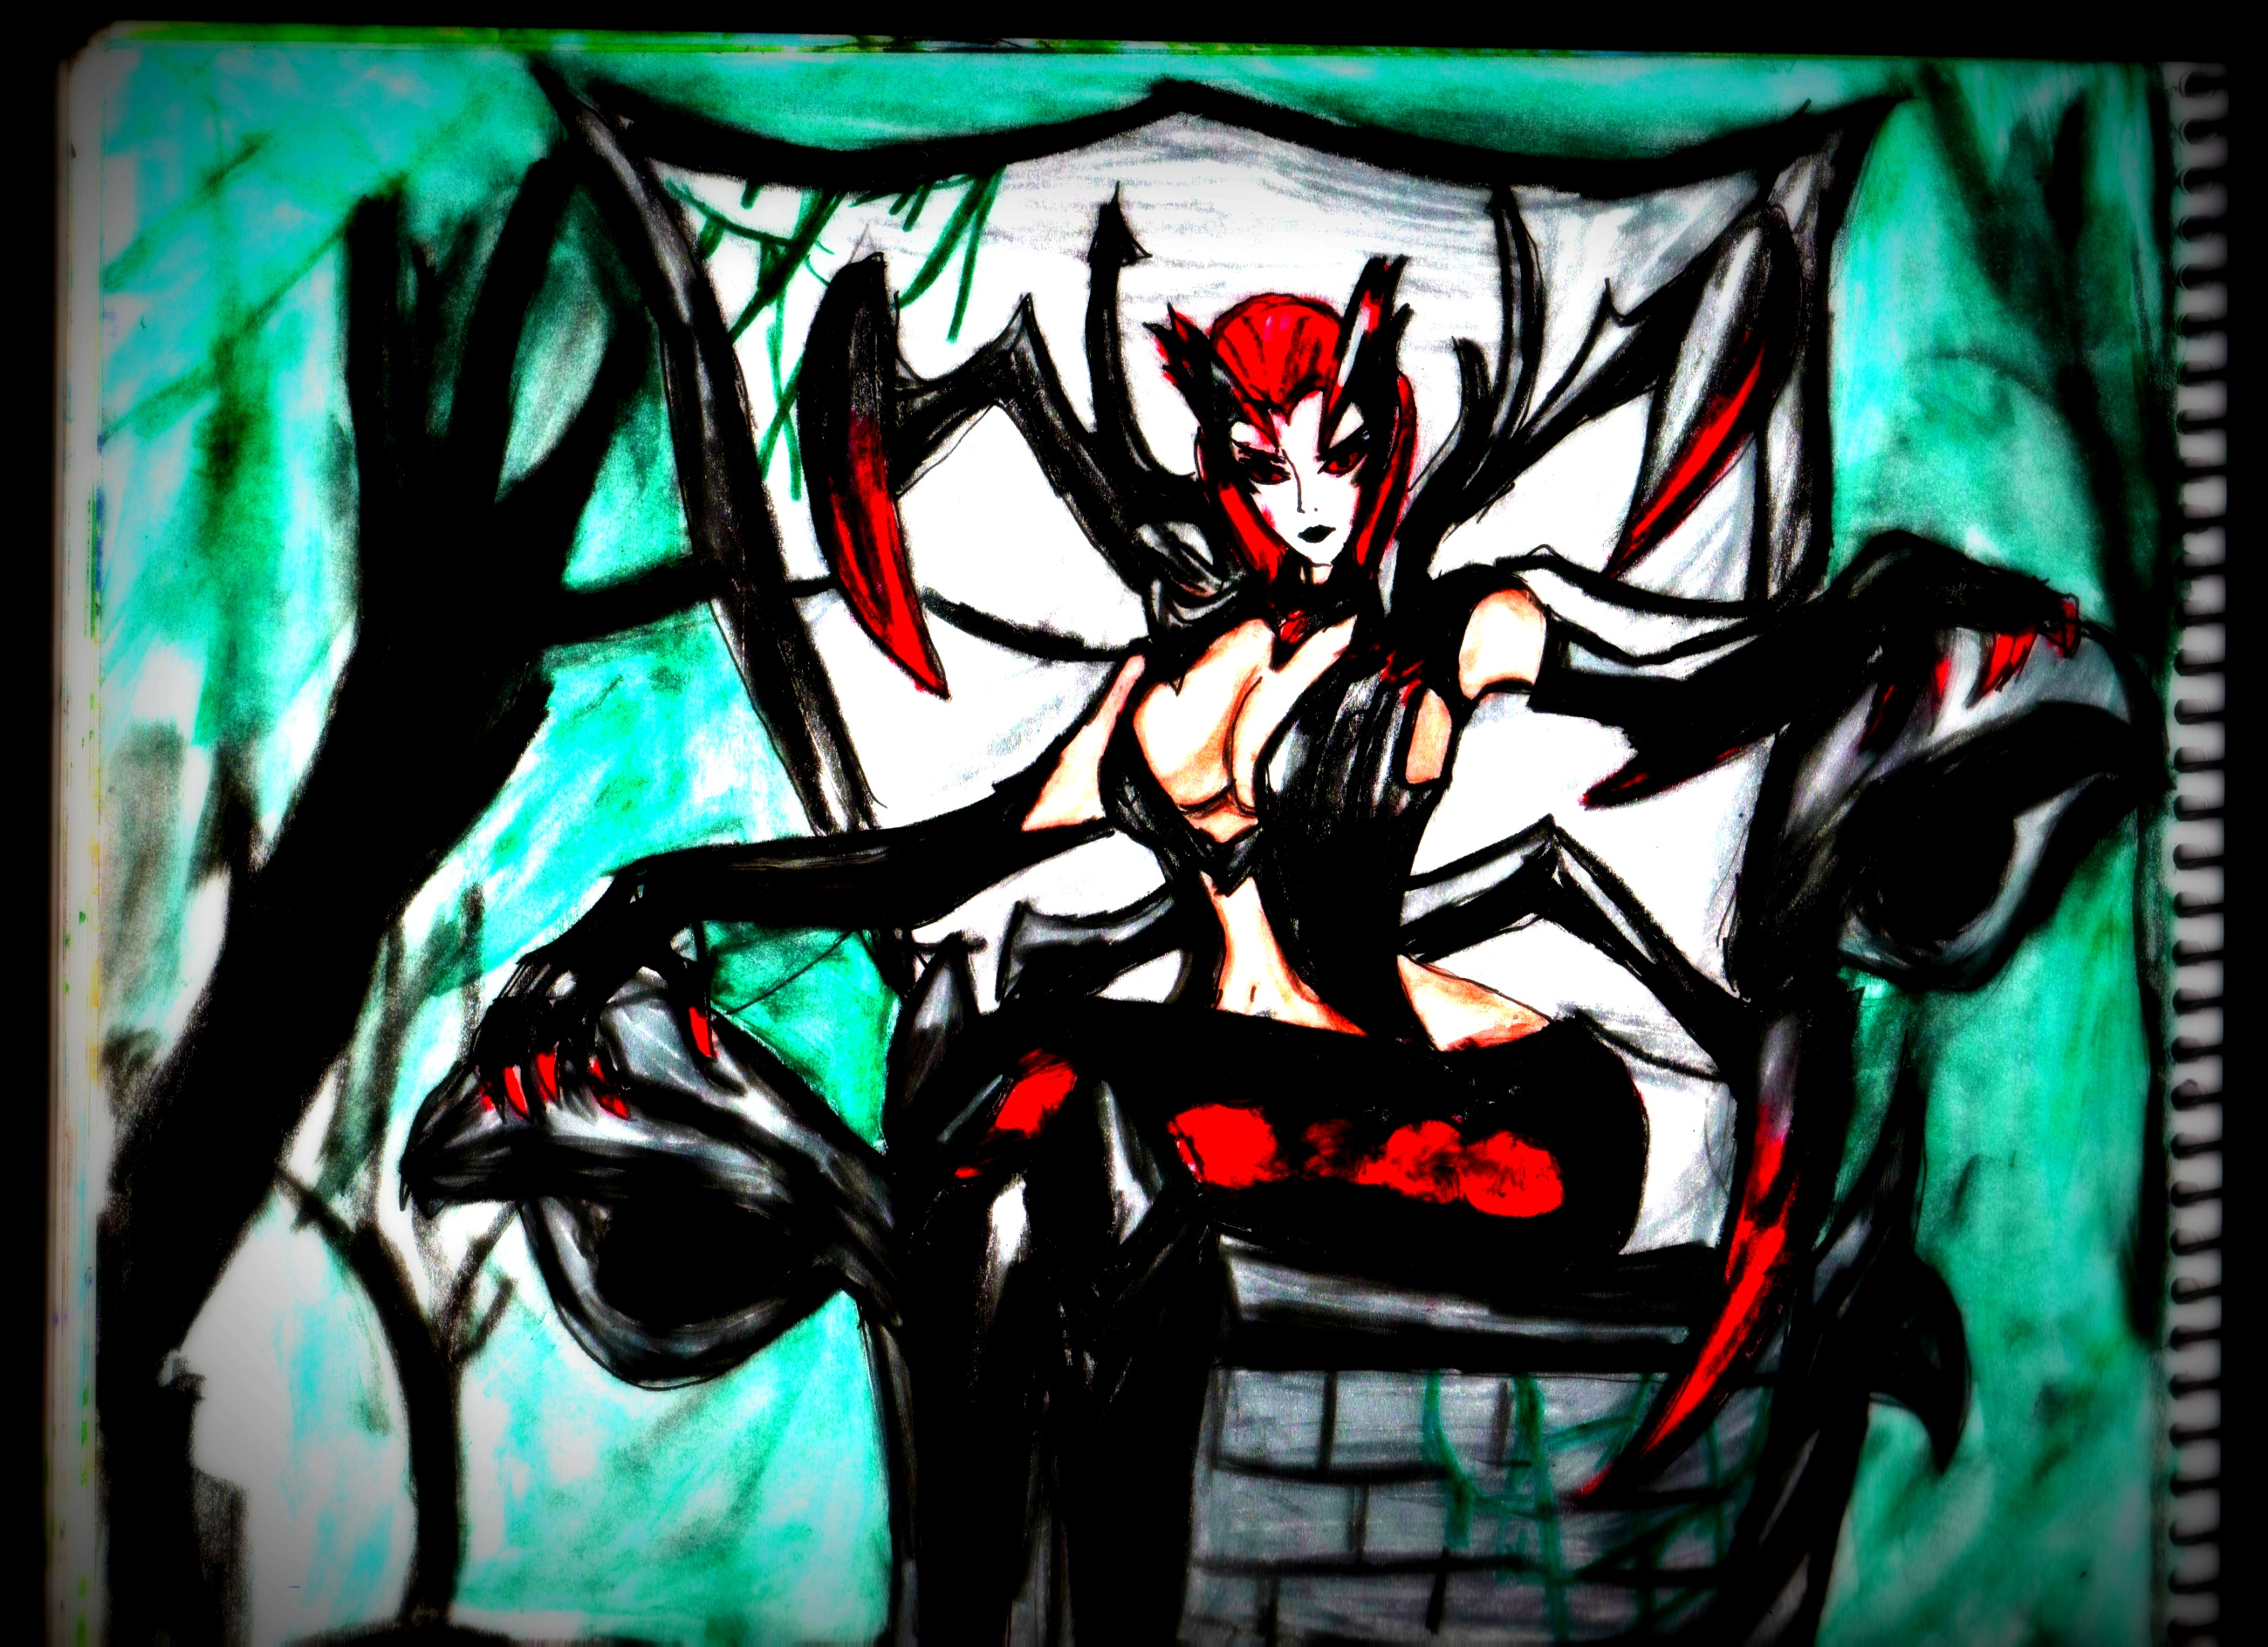 Elise The Spider Queen League of Legends lol by GuillermoAntil on 3179x2309